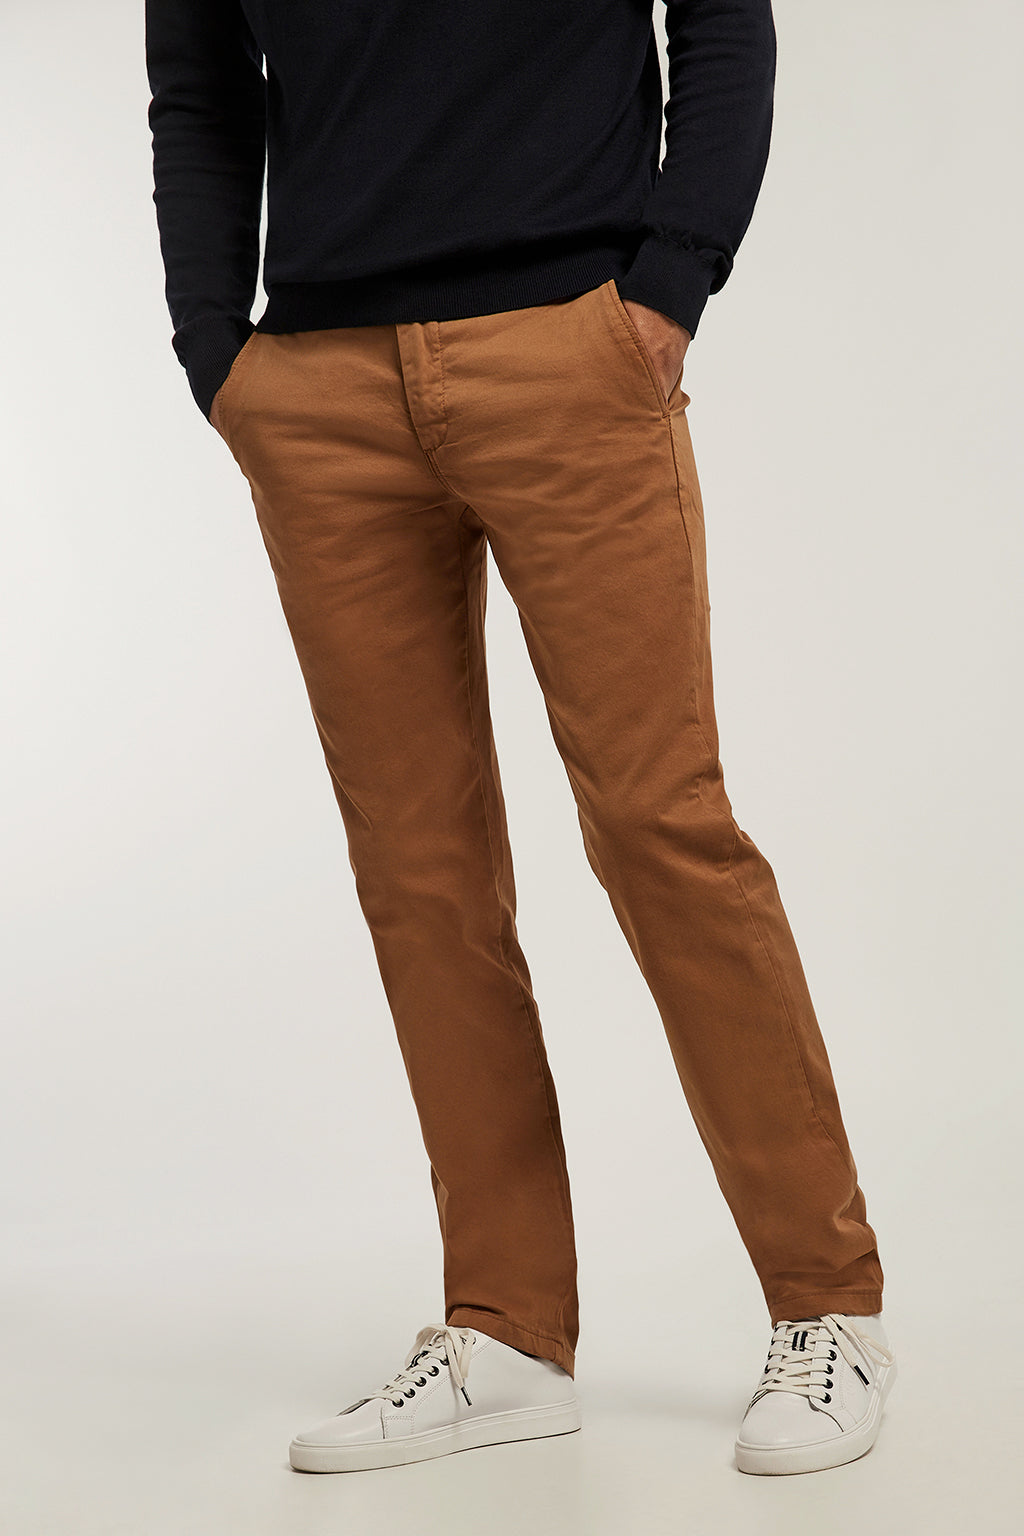 Camel custom fit chinos